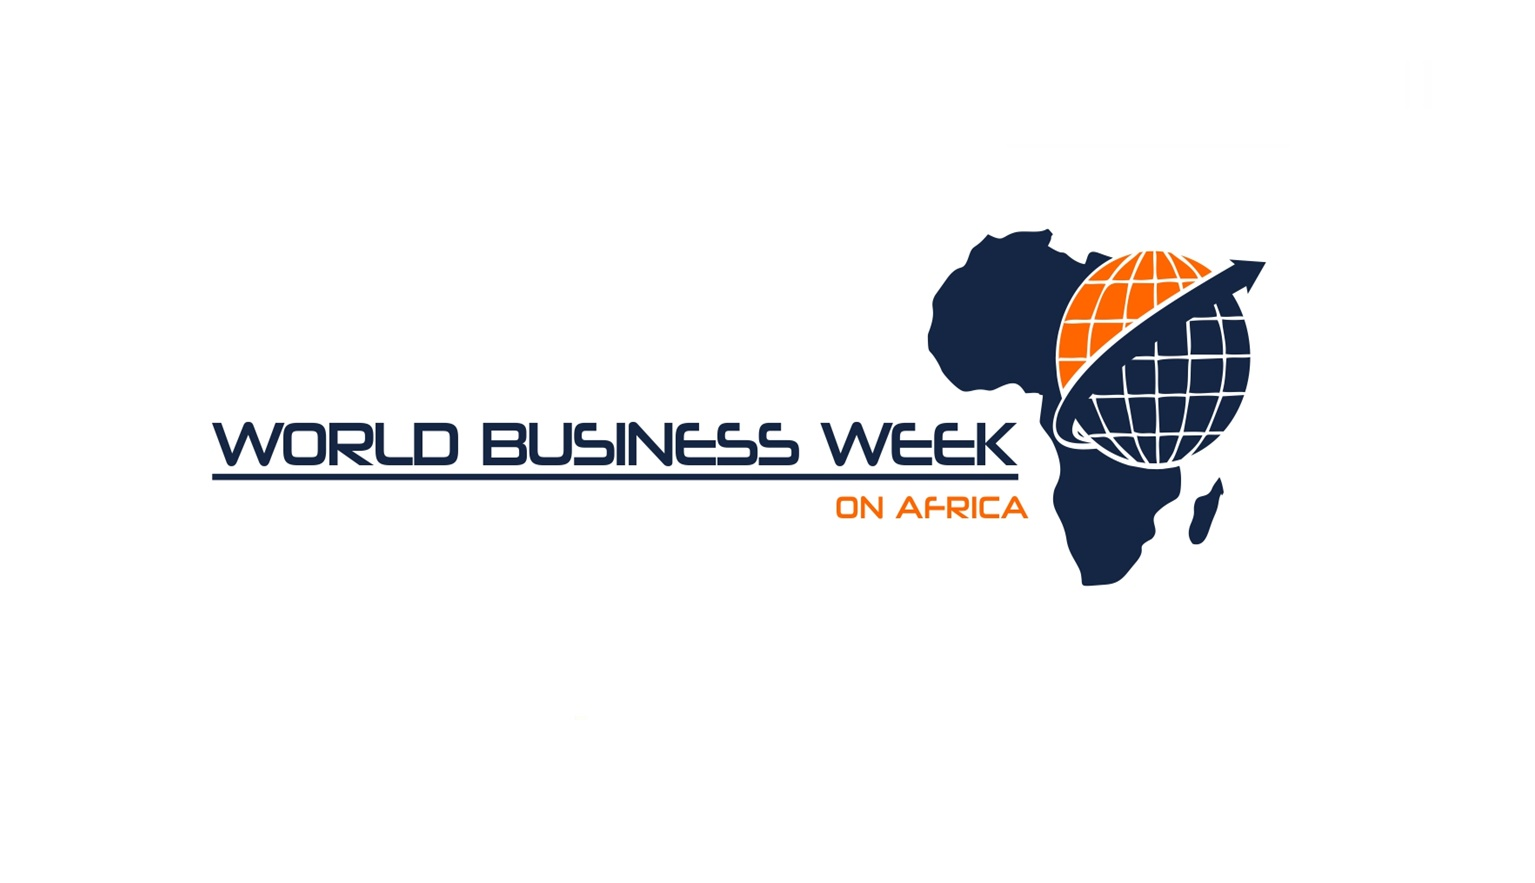 WORLD BUSINESS WEEK ON AFRICA